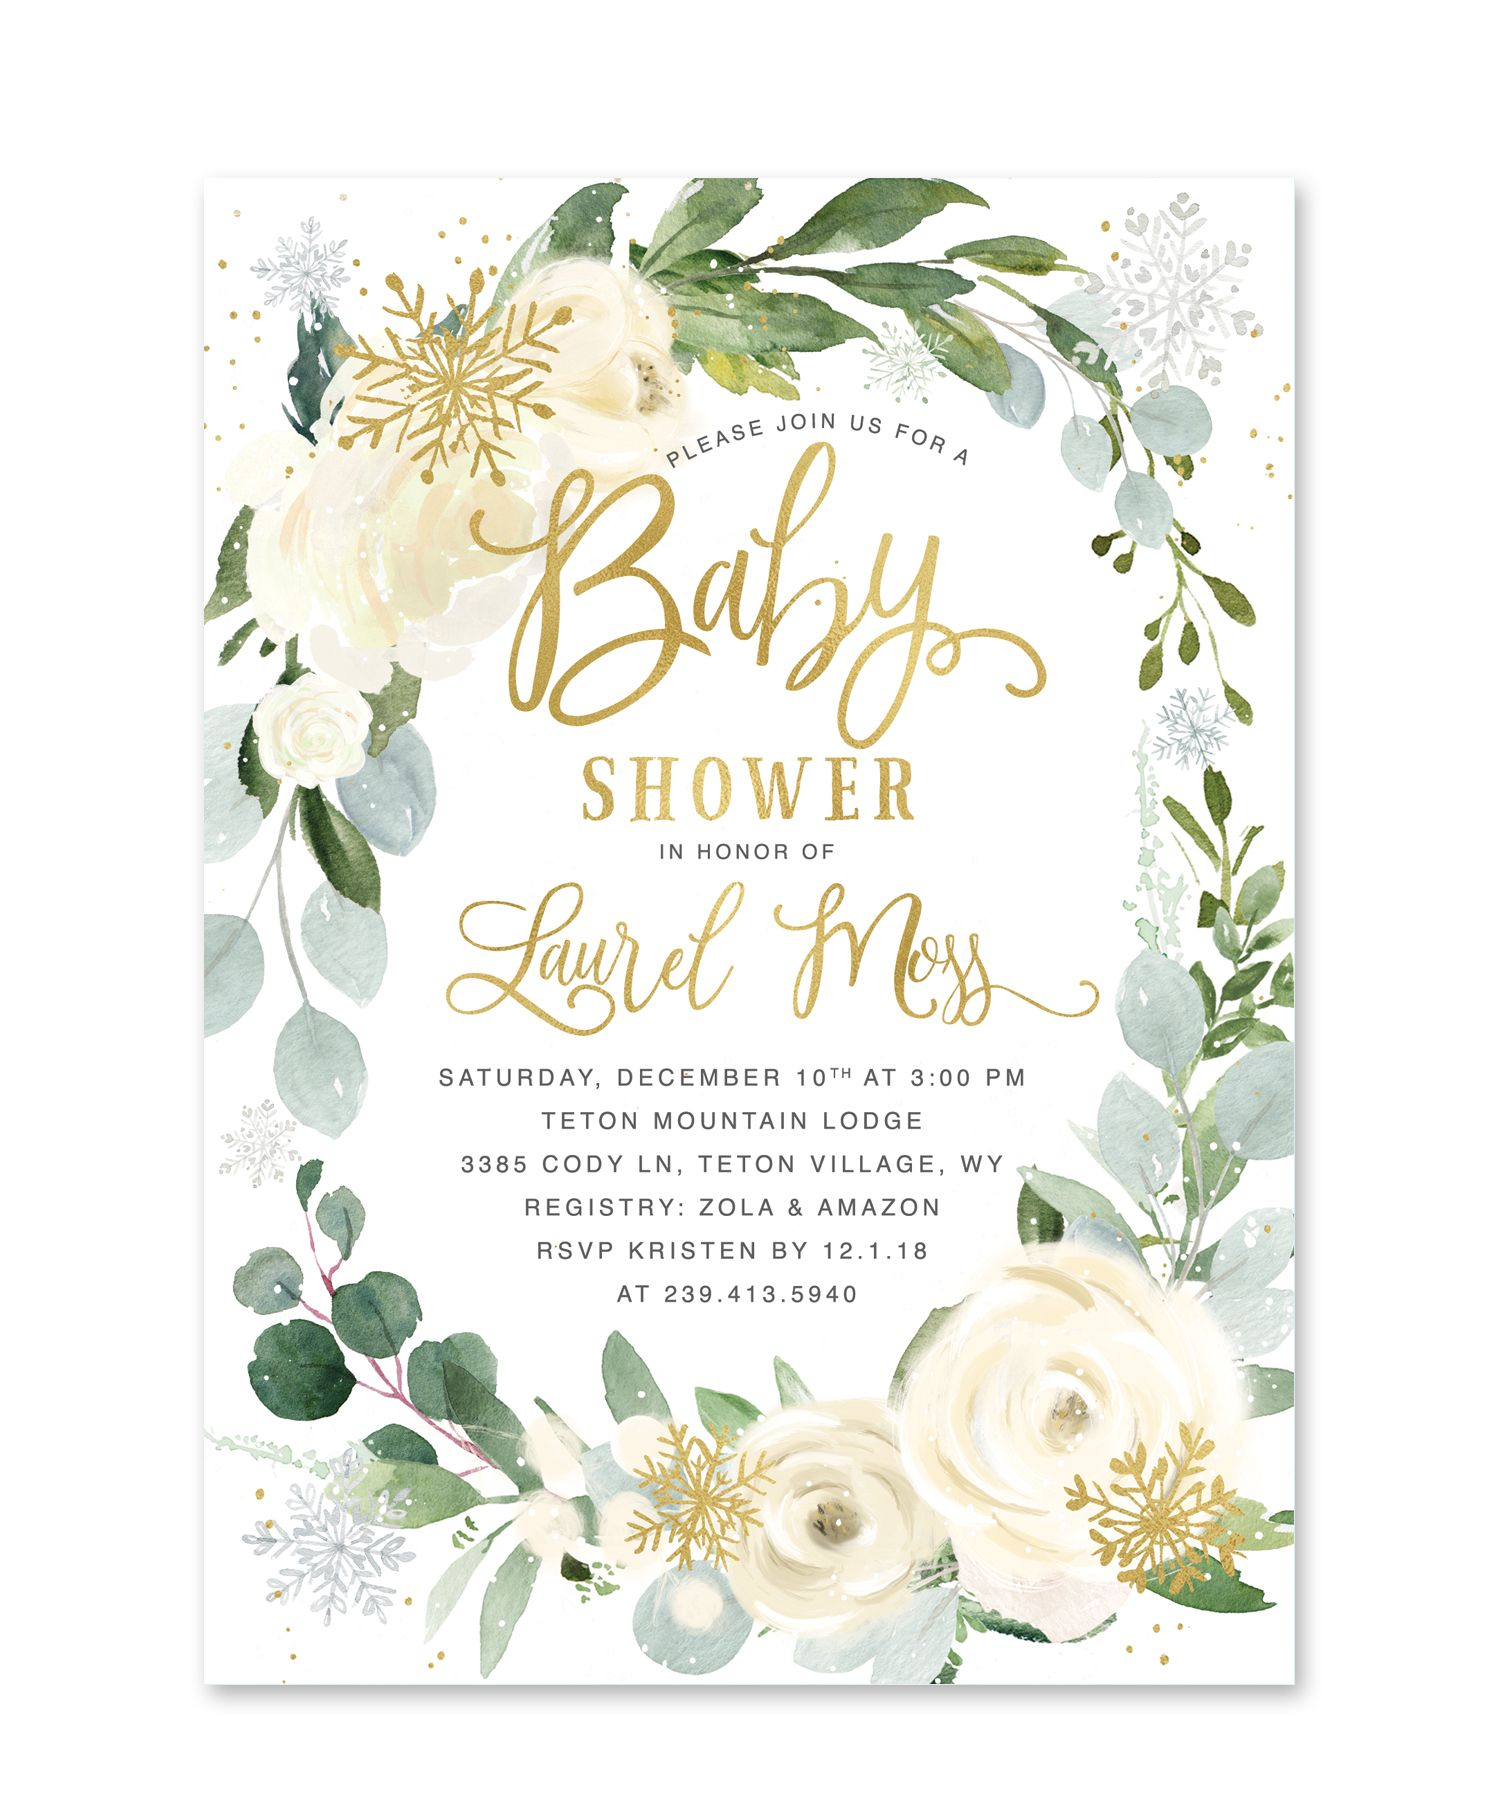 73219b469bc0 Beautiful Winter baby shower invitation White Winter florals with snow and  greenery. Add baby s name